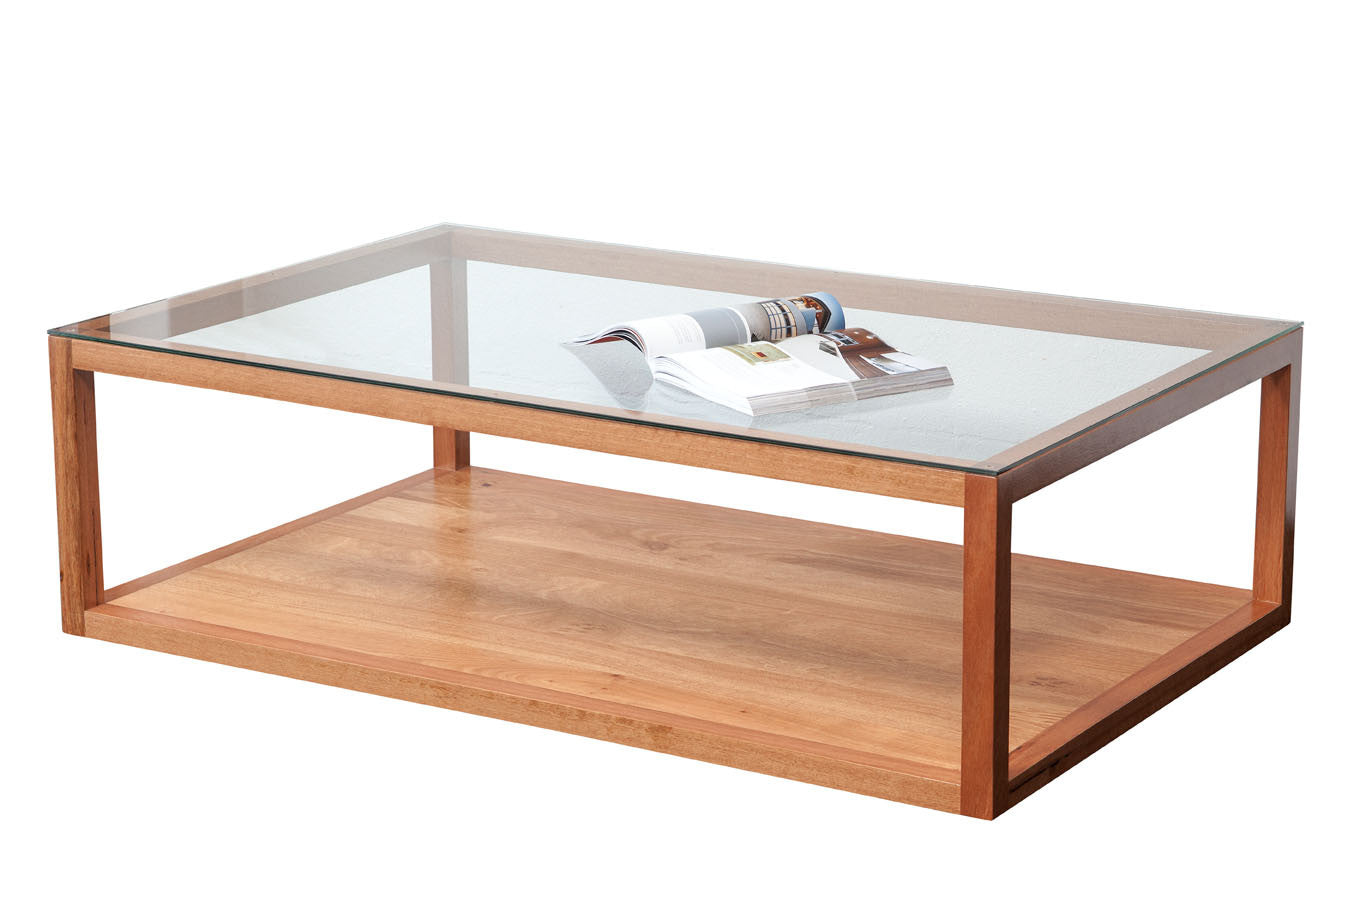 Wa made bailey blackbutt coffee table with glass top for Coffee tables glass top